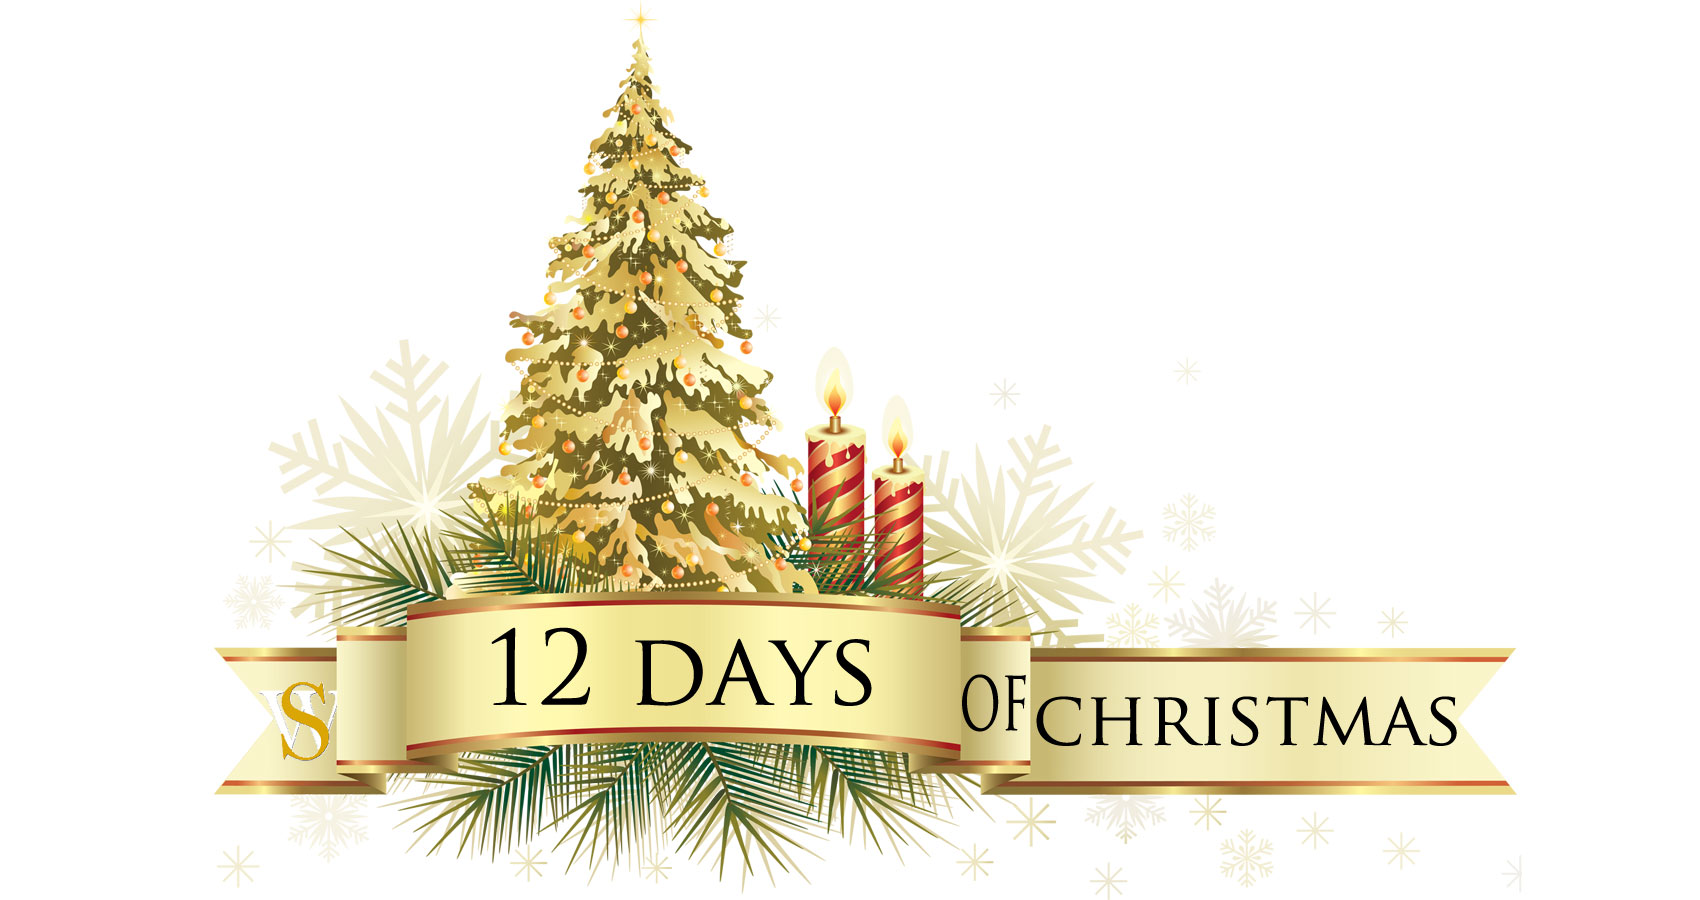 12 Days of Christmas submission at Spillwords.com